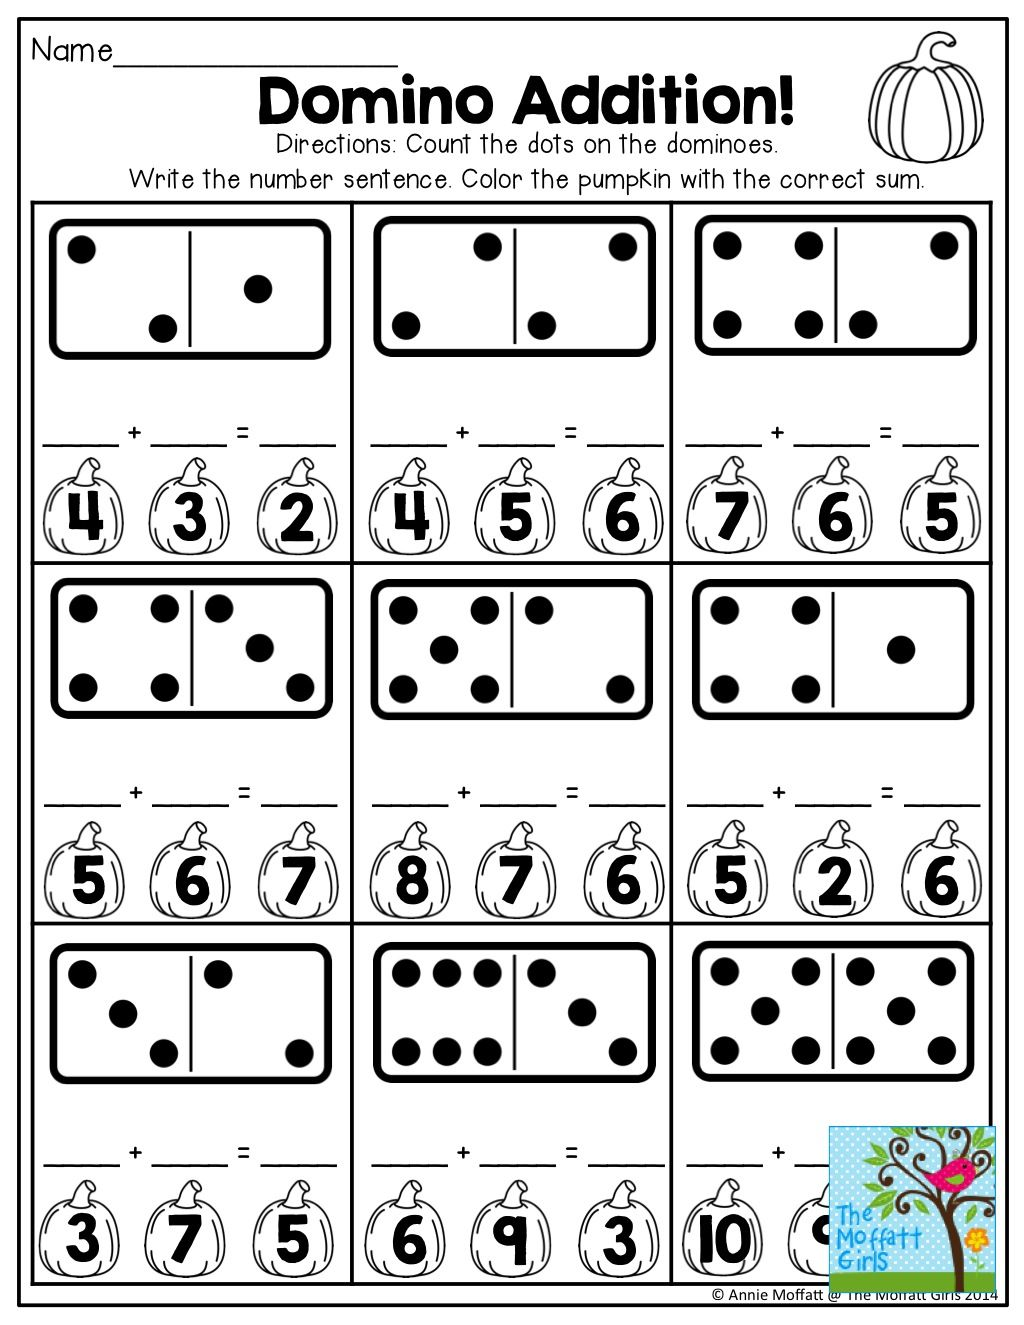 Domino Addition And Tons Of Other Fun Printables For